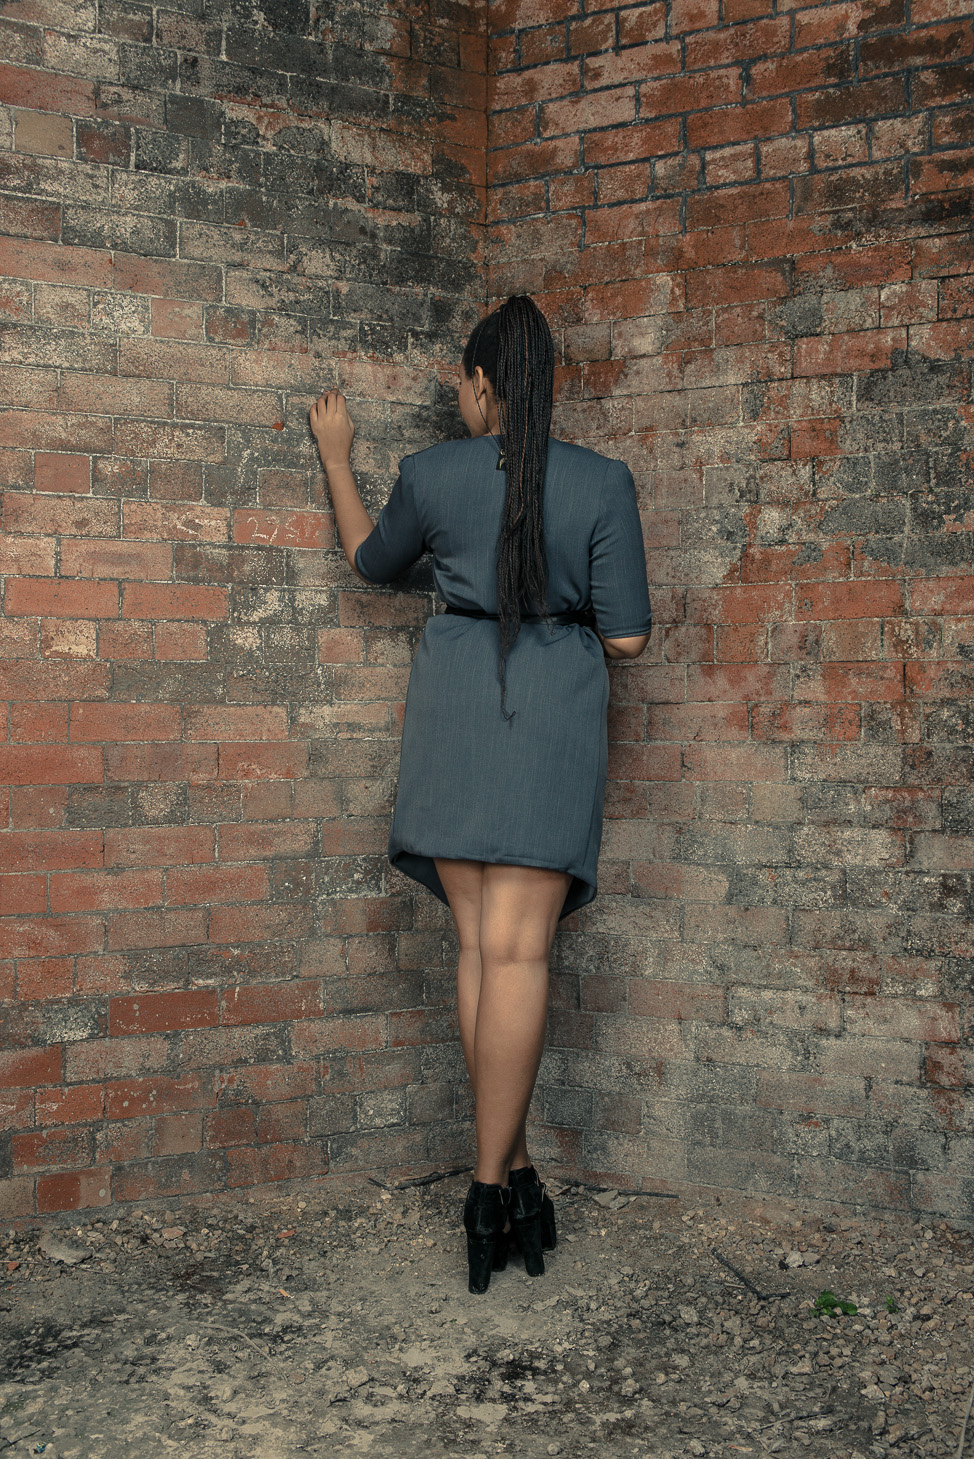 zaramia-ava-zaramiaava-leeds-fashion-designer-ethical-sustainable-tailored-minimalist-dress-jacket-versatile-drape-grey-bodysuit-black-obi-belt-wrap-cowl-styling-womenswear-models-photoshoot-23